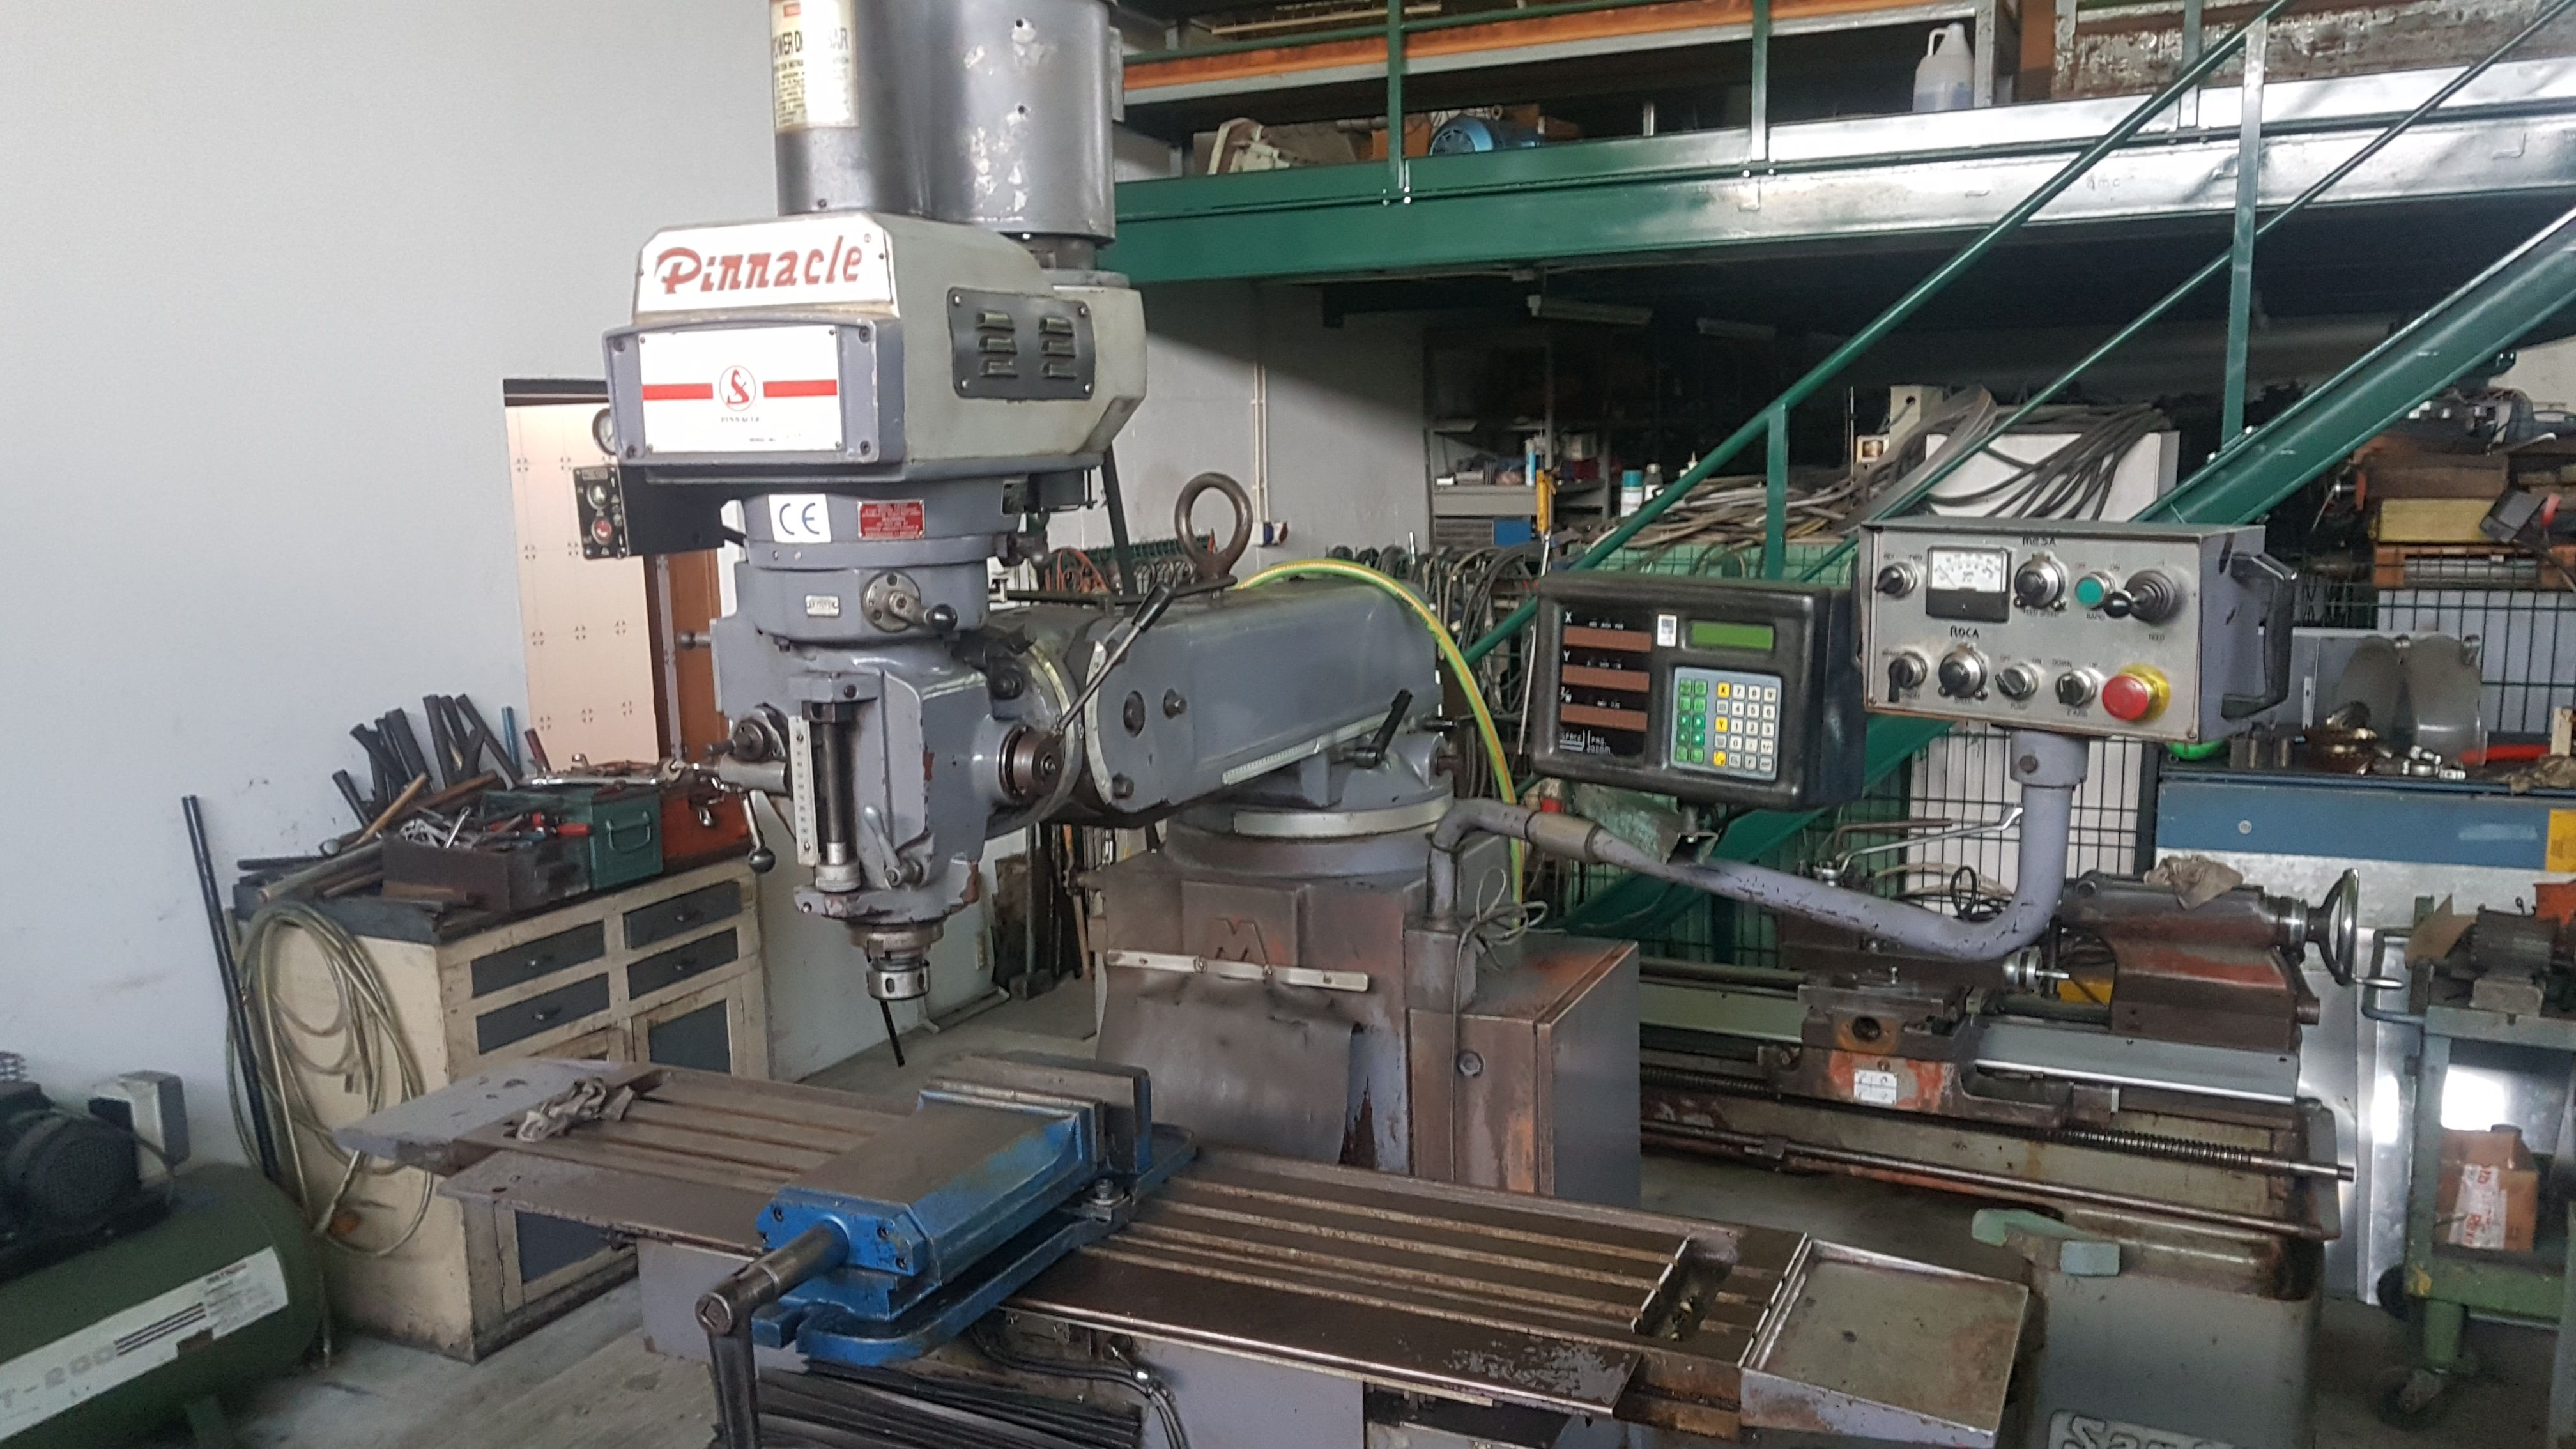 PINNACLE MACHINE TOOL MILLING MACHINE